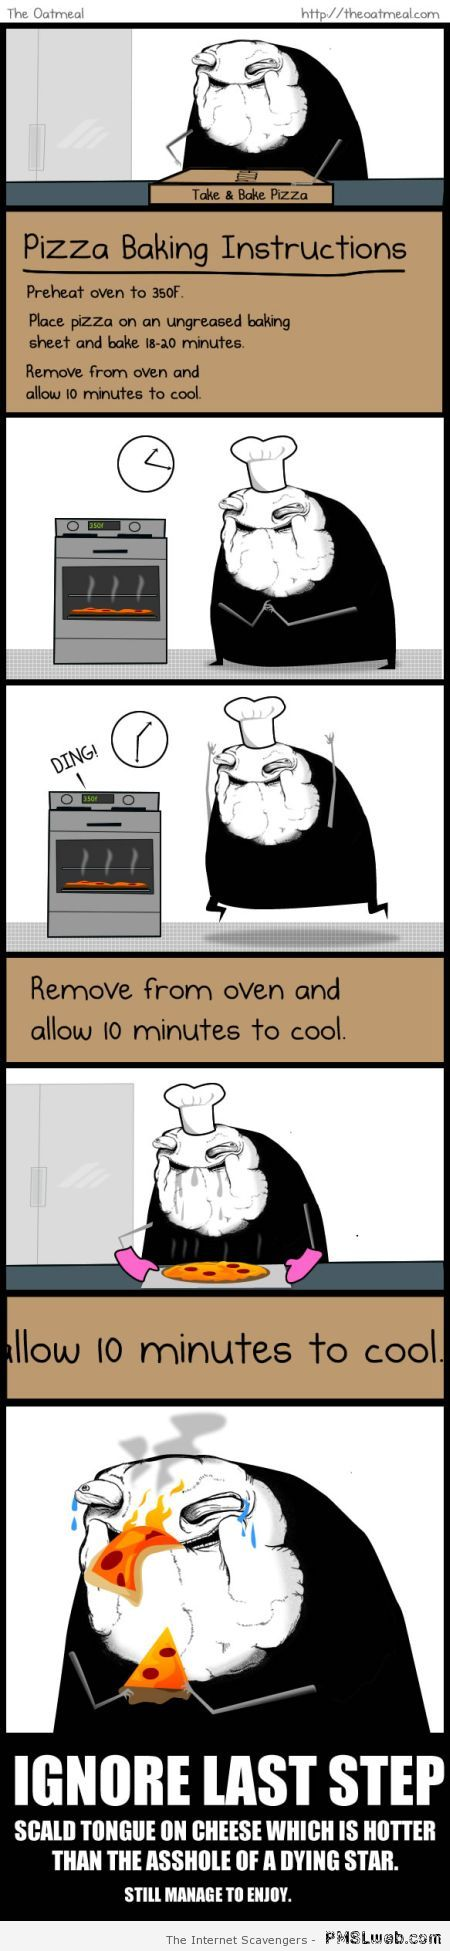 Pizza baking instructions humor at PMSLweb.com